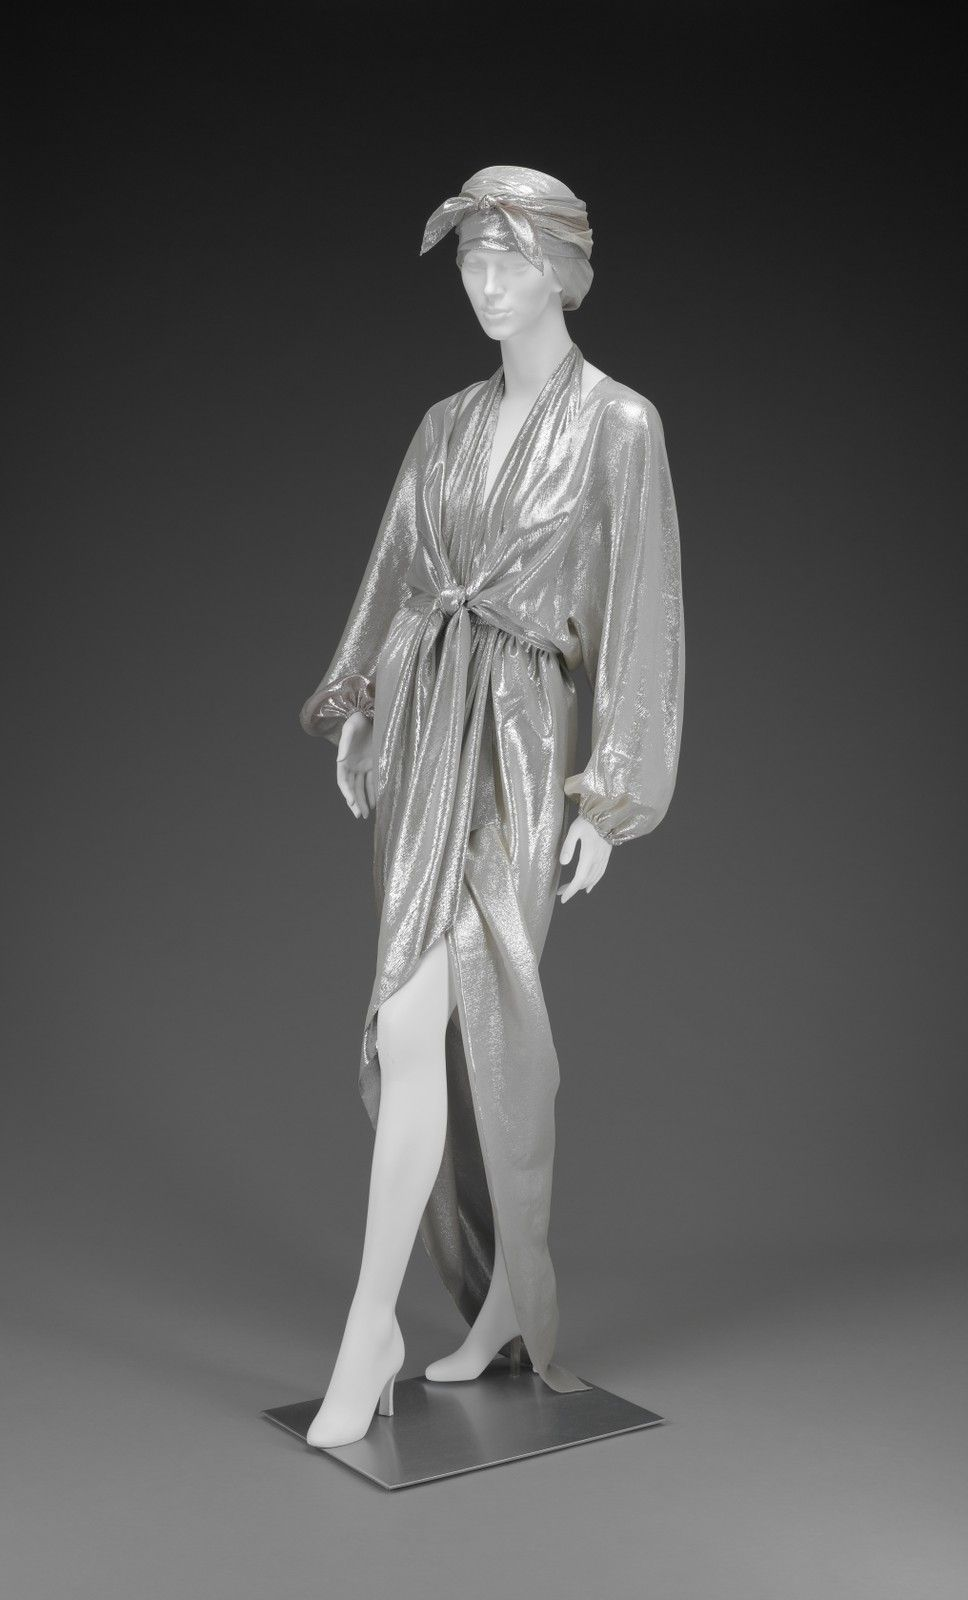 designer Halston | American | 1932-1990 creation date about 1975 materials silk metalic threads (lamé)